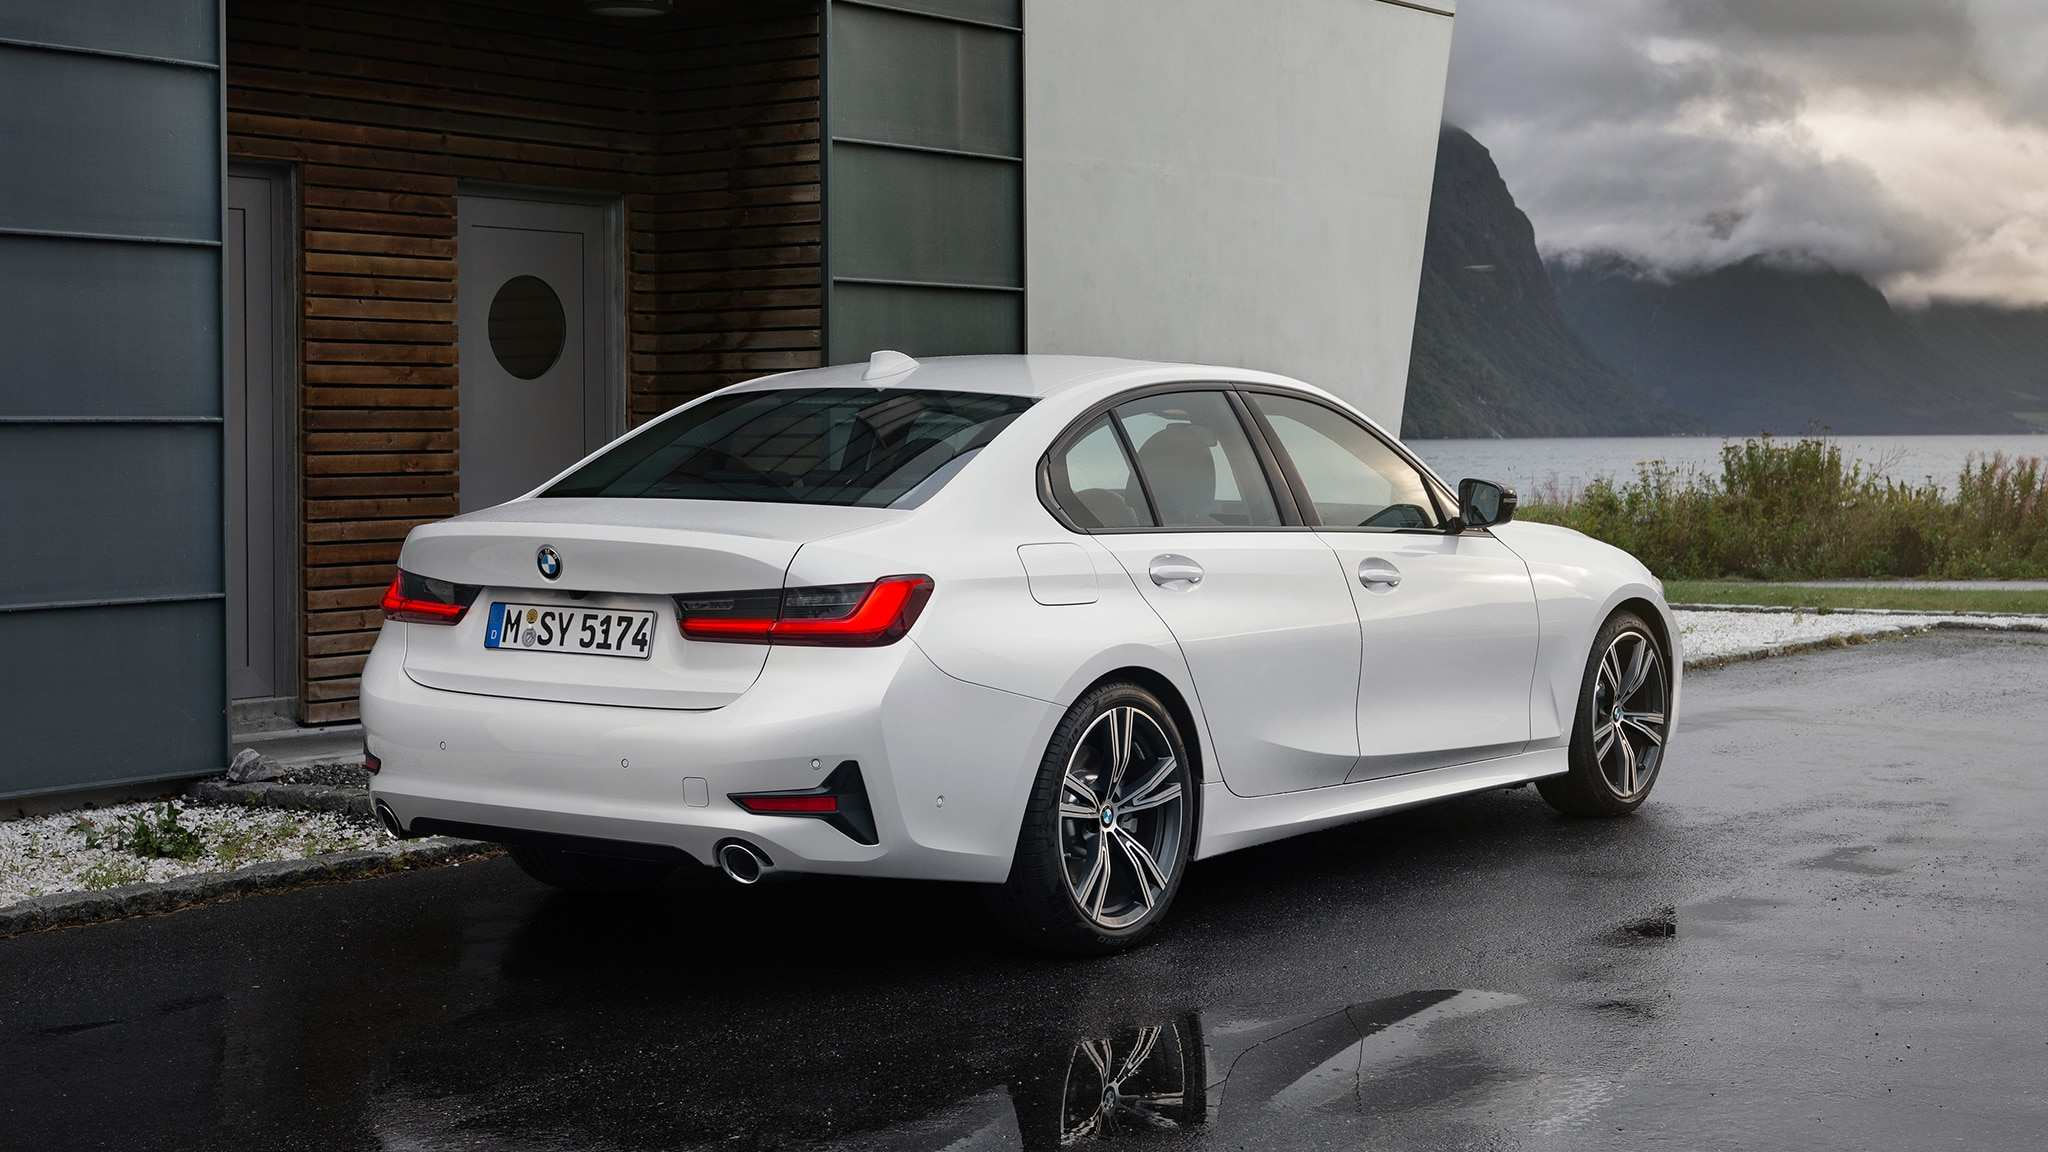 88 Best Review 2019 3 Series Bmw Specs with 2019 3 Series Bmw